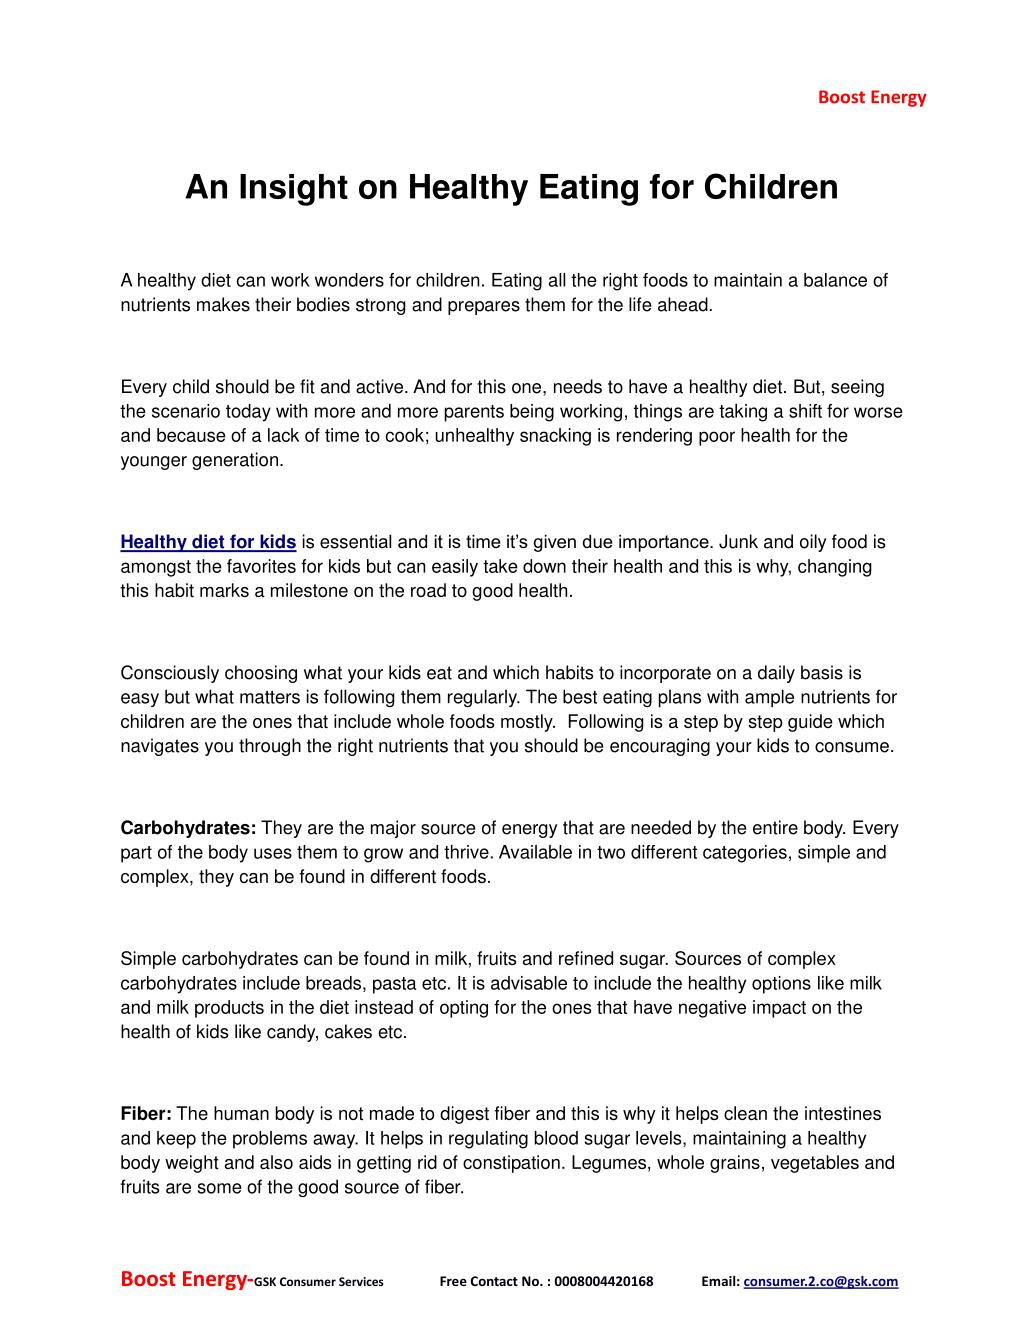 PPT - An insight on healthy eating for children PowerPoint